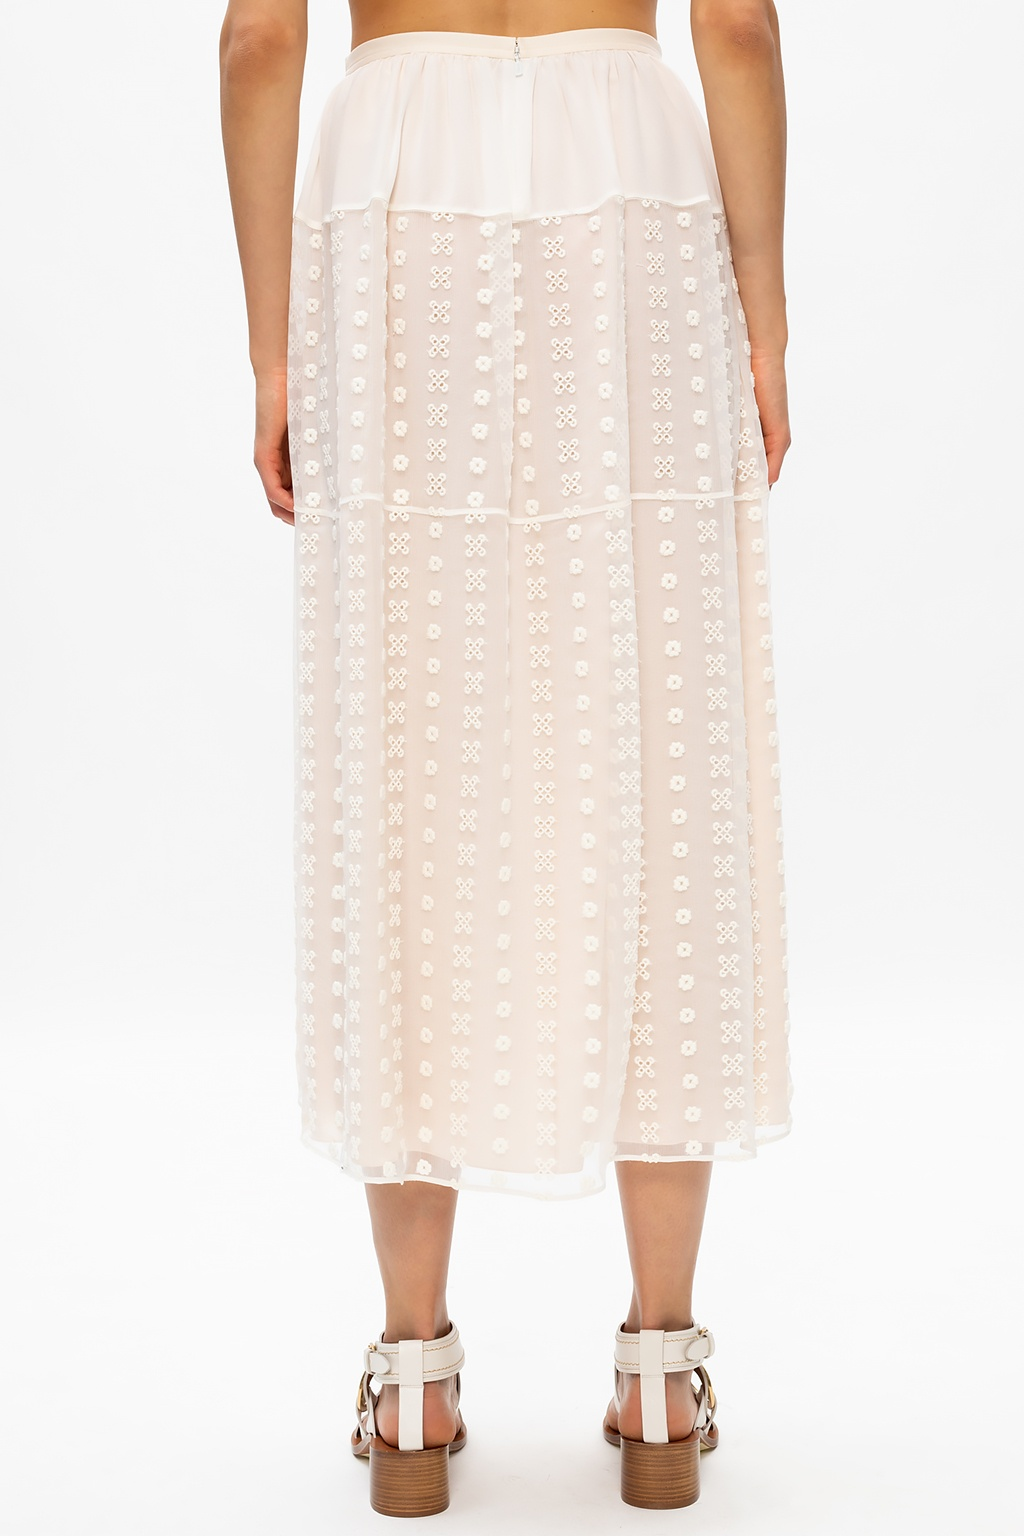 Chloé Long skirt